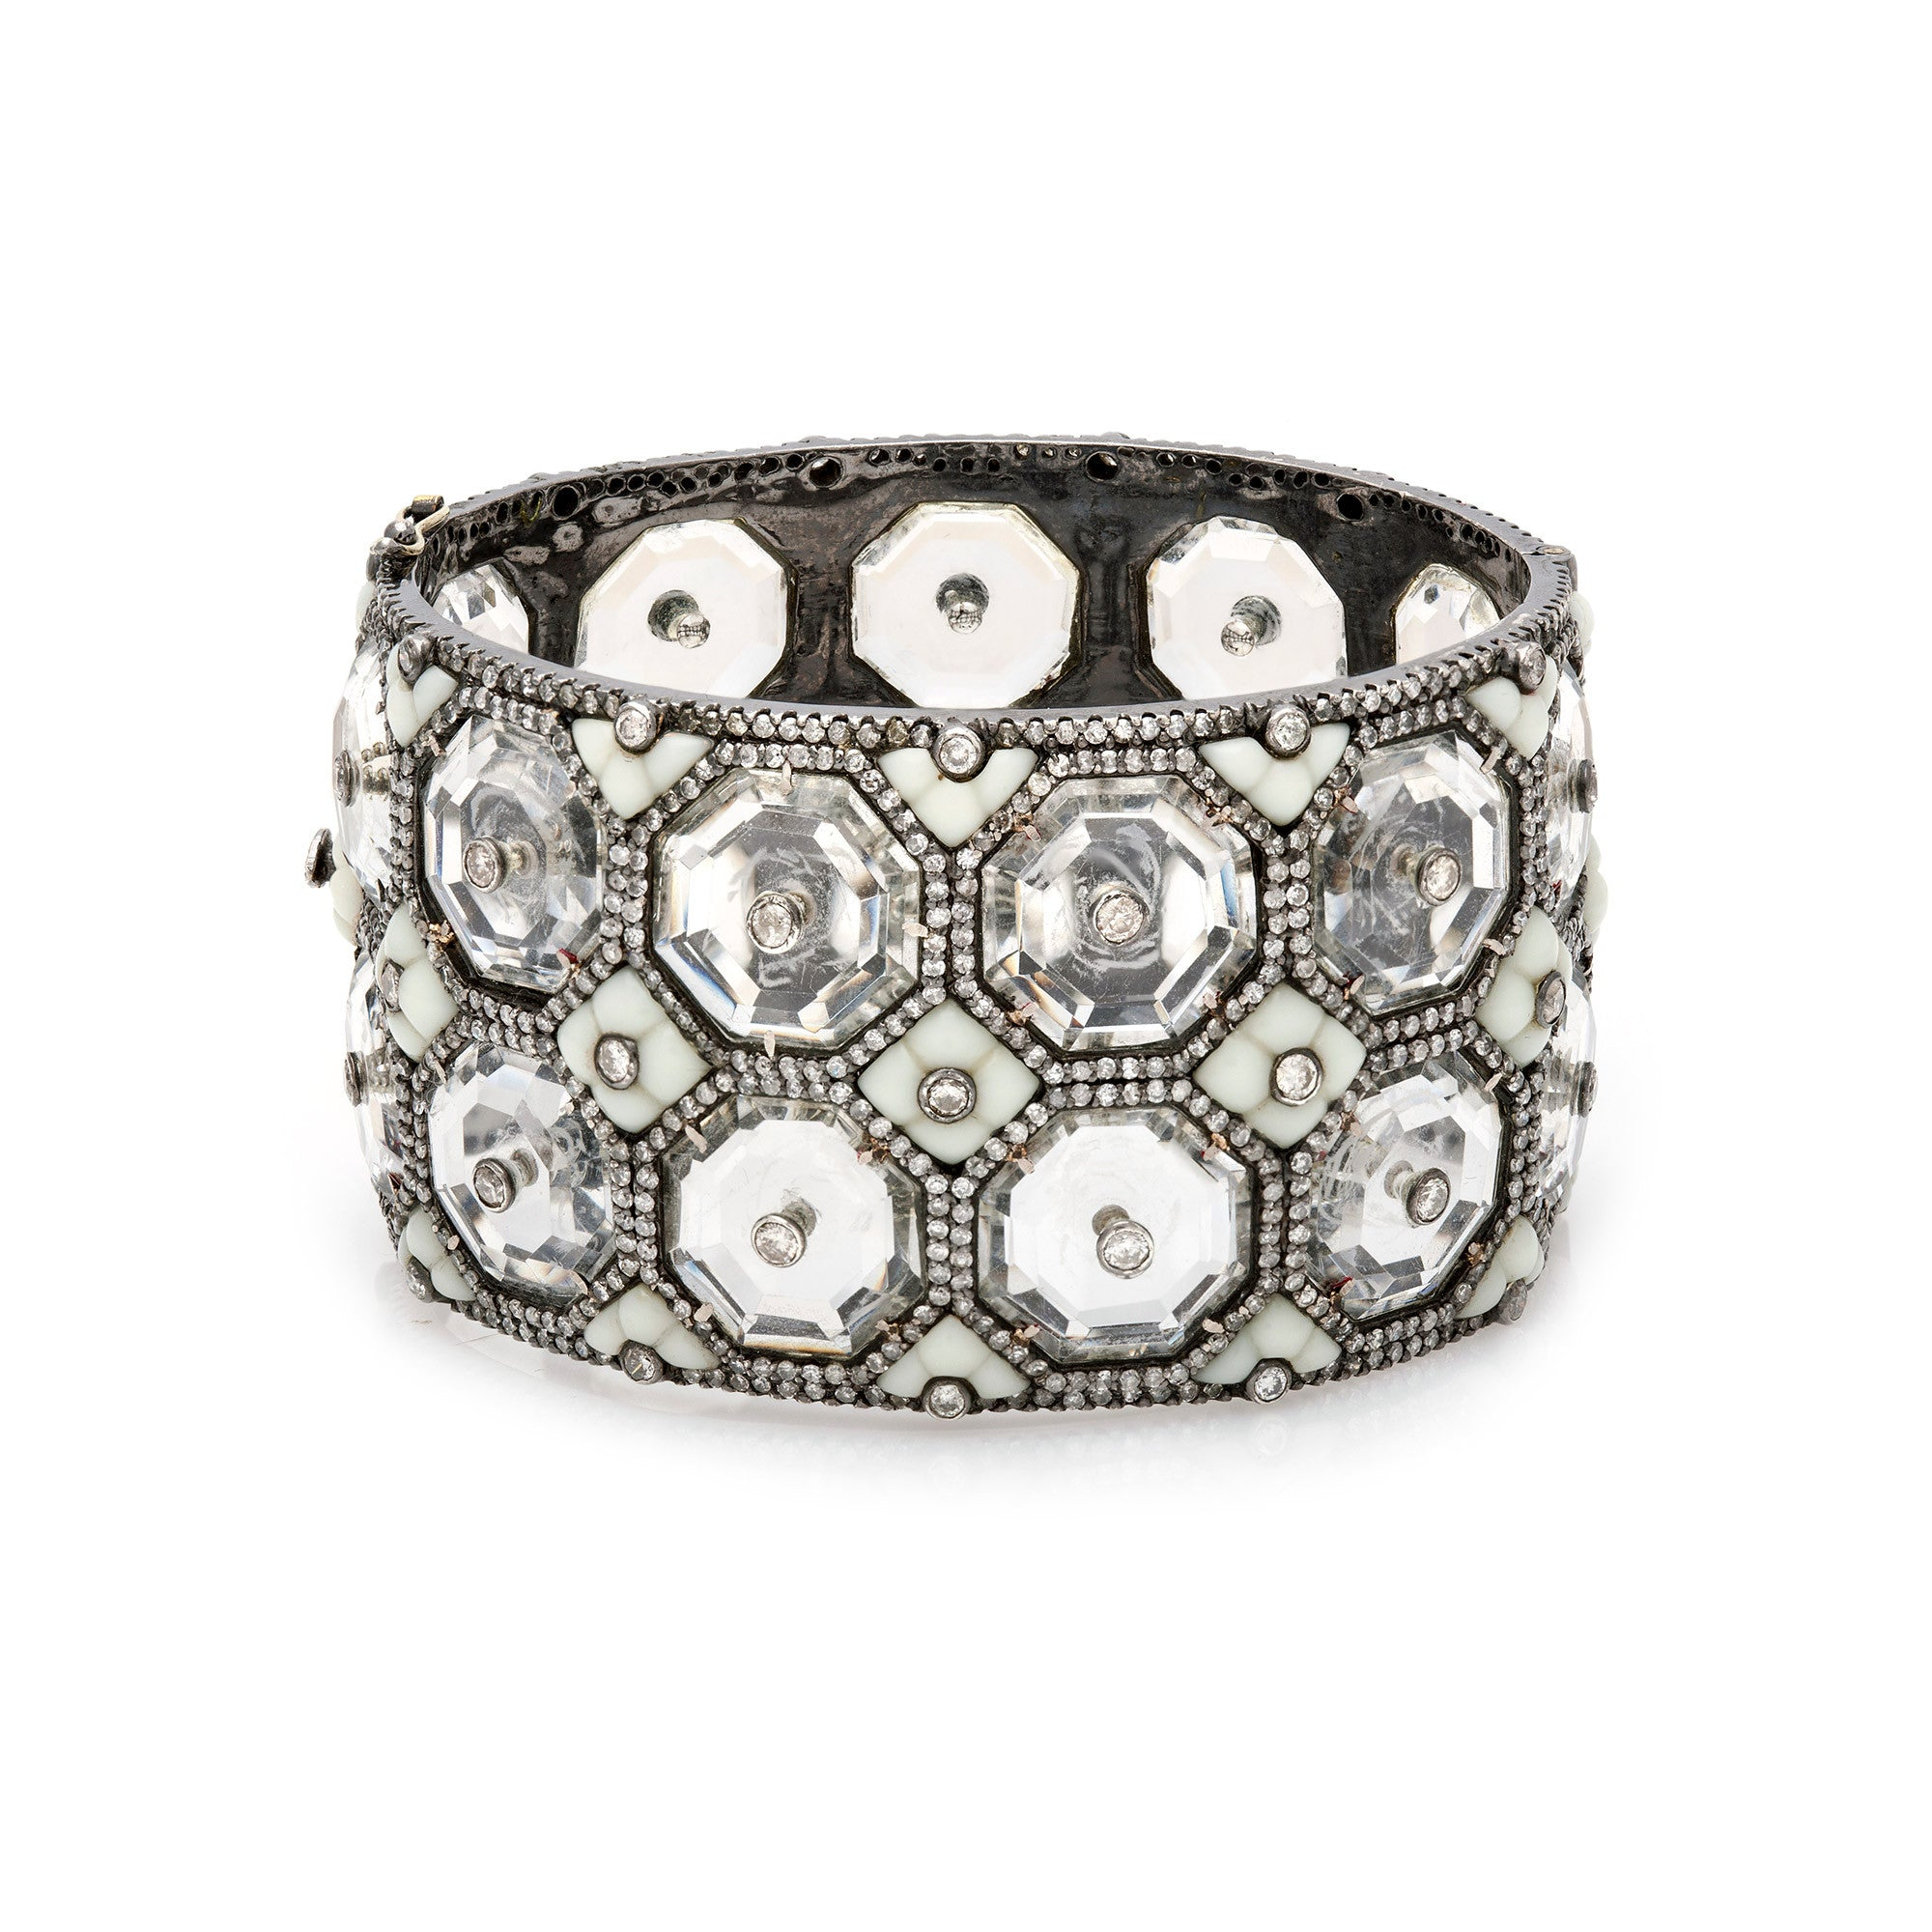 Crystal & Diamond Cuff with Vintage White Bakelite-50% OFF!